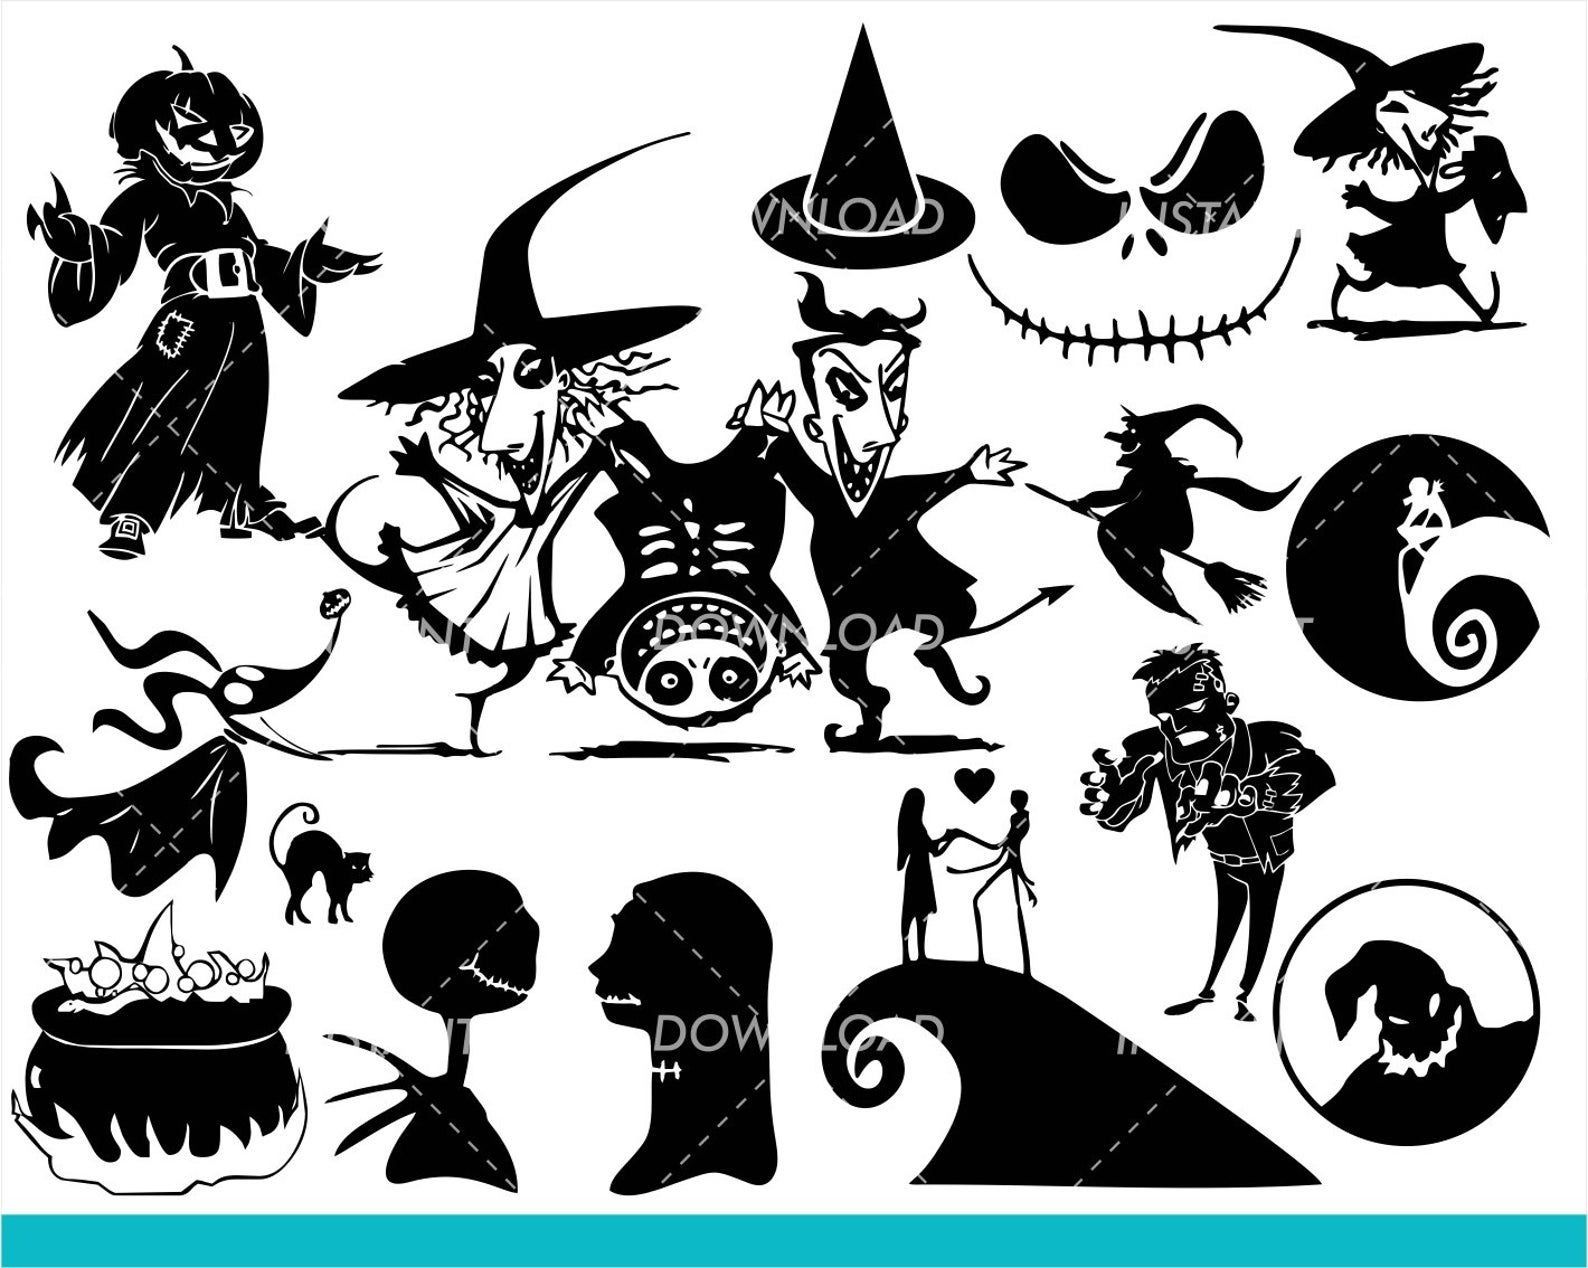 Nightmare Before Christmas Svg Collection Lock Shock And Etsy In 2020 Nightmare Before Christmas Tattoo Nightmare Before Christmas Christmas Tattoo